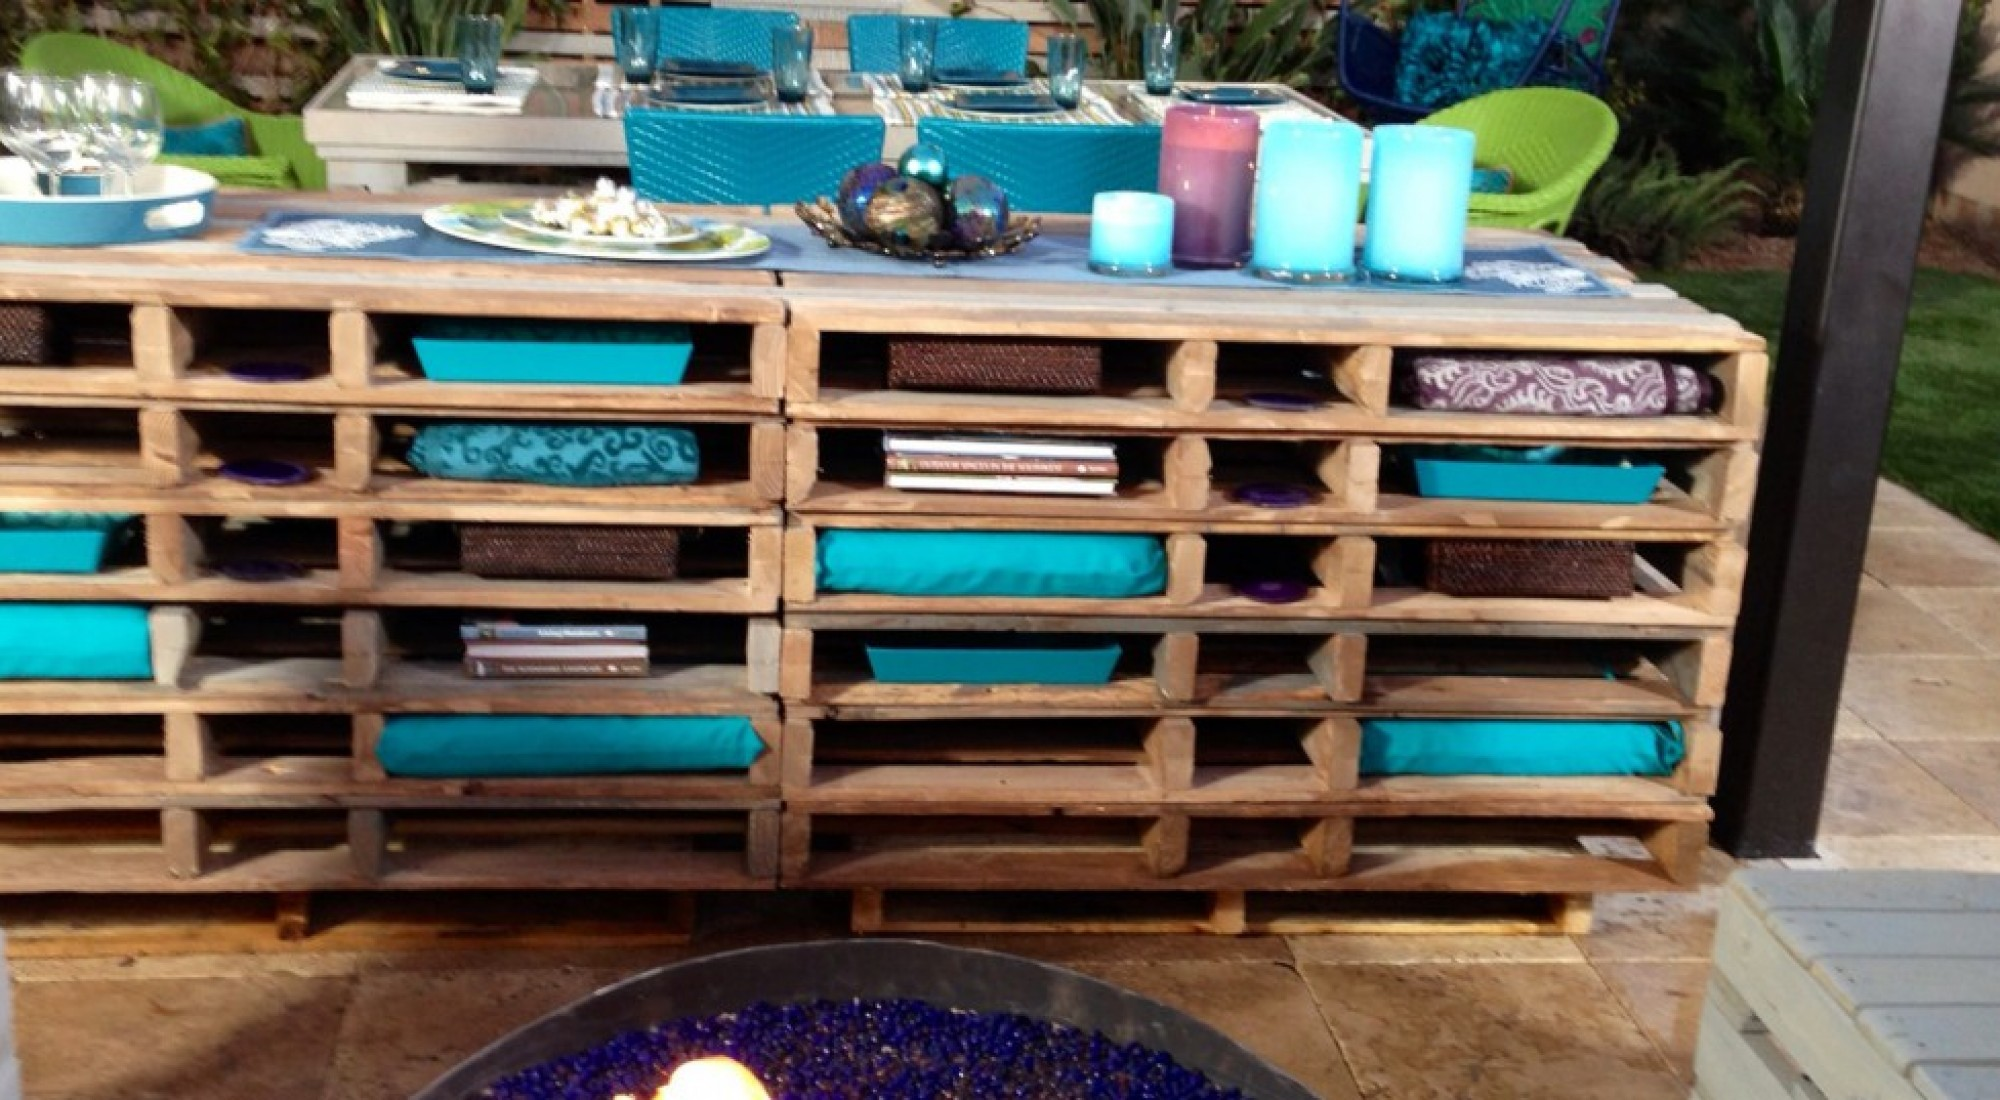 Peacock-and-Pallets-10-980×537